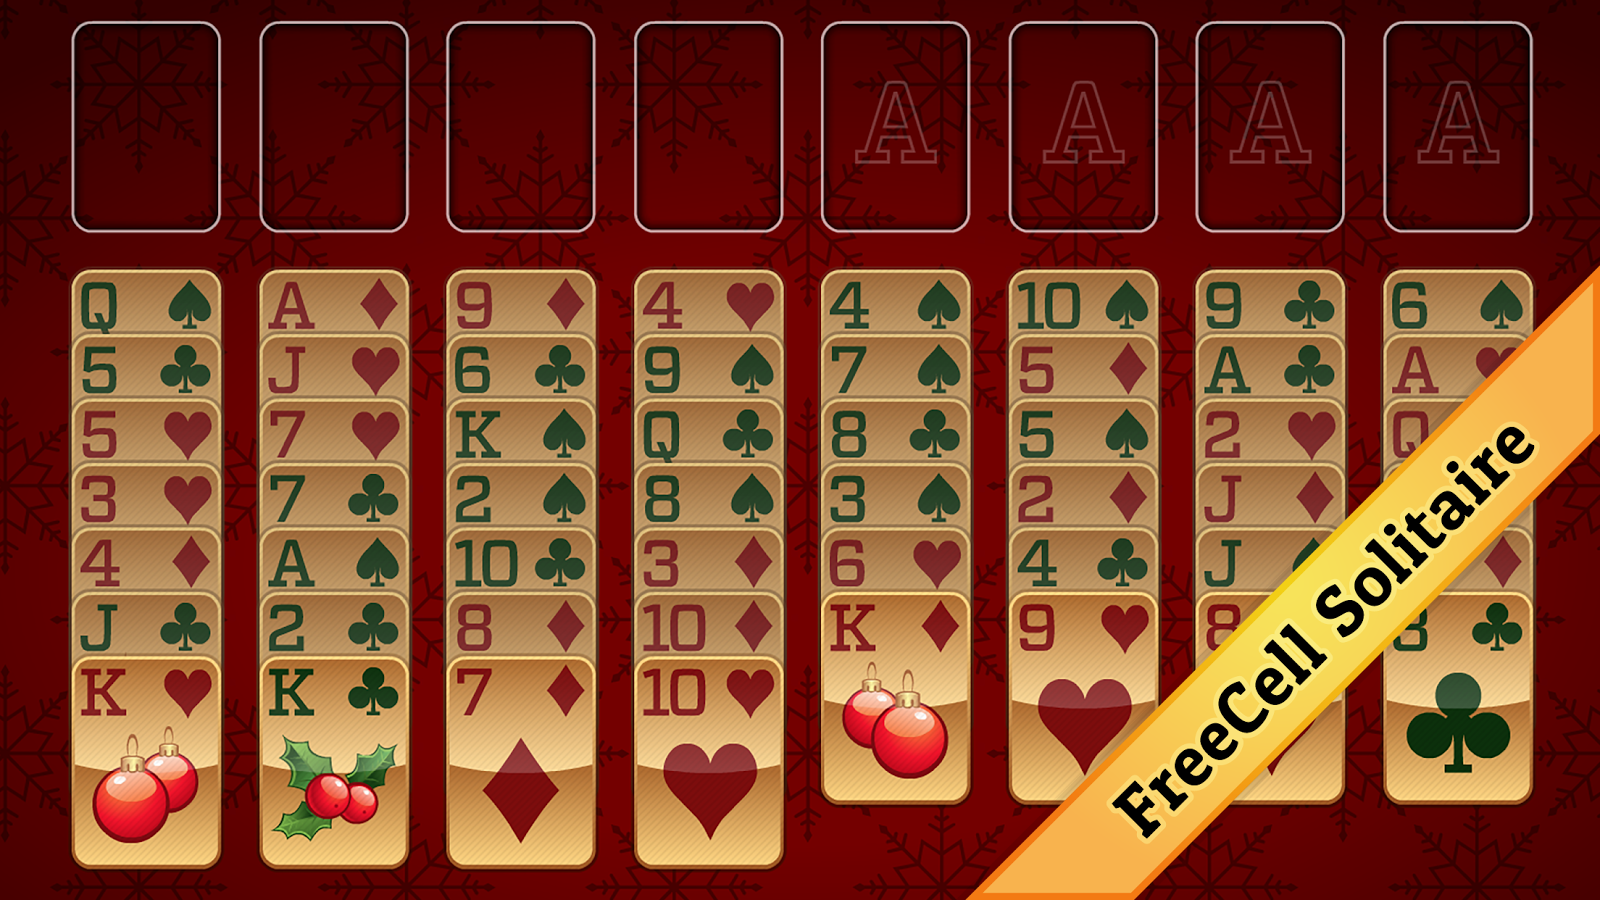 Christmas Solitaire Freecell.Christmas Solitaire 2 0 1 Apk Download Android Card Games